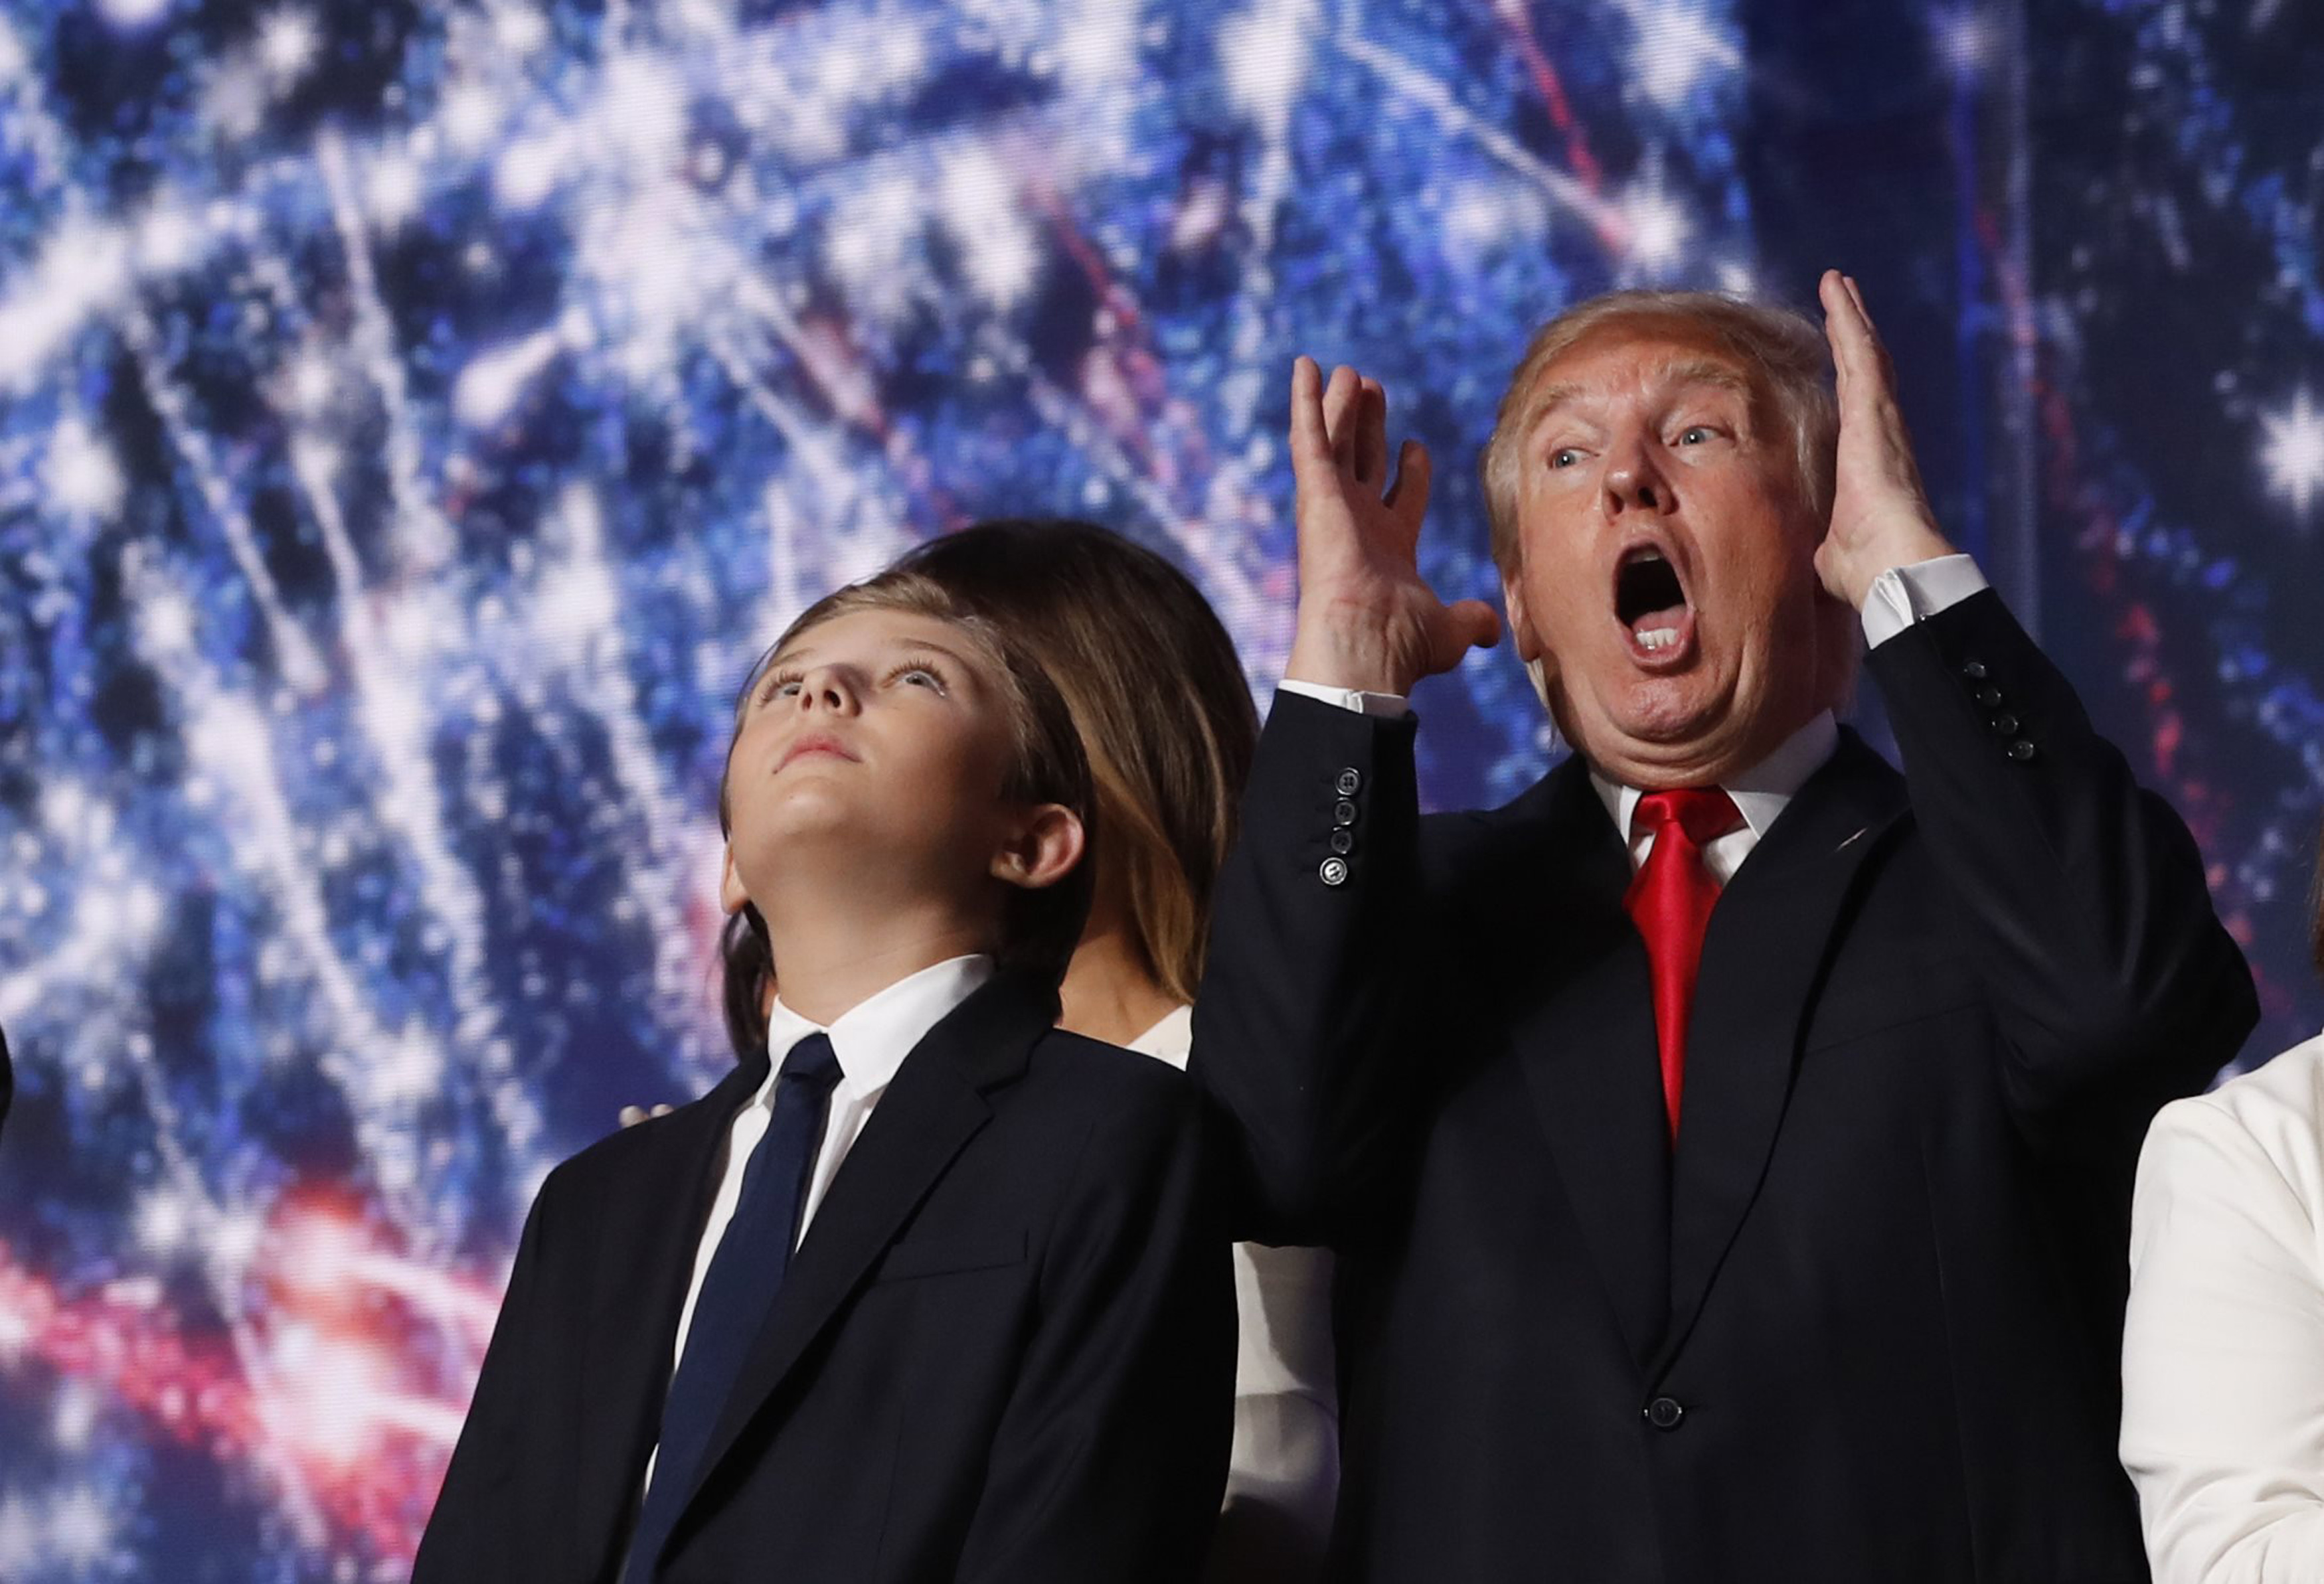 Republican U.S. presidential nominee Trump reacts to balloons, confetti and electronic fireworks at the Republican National Convention in Cleveland